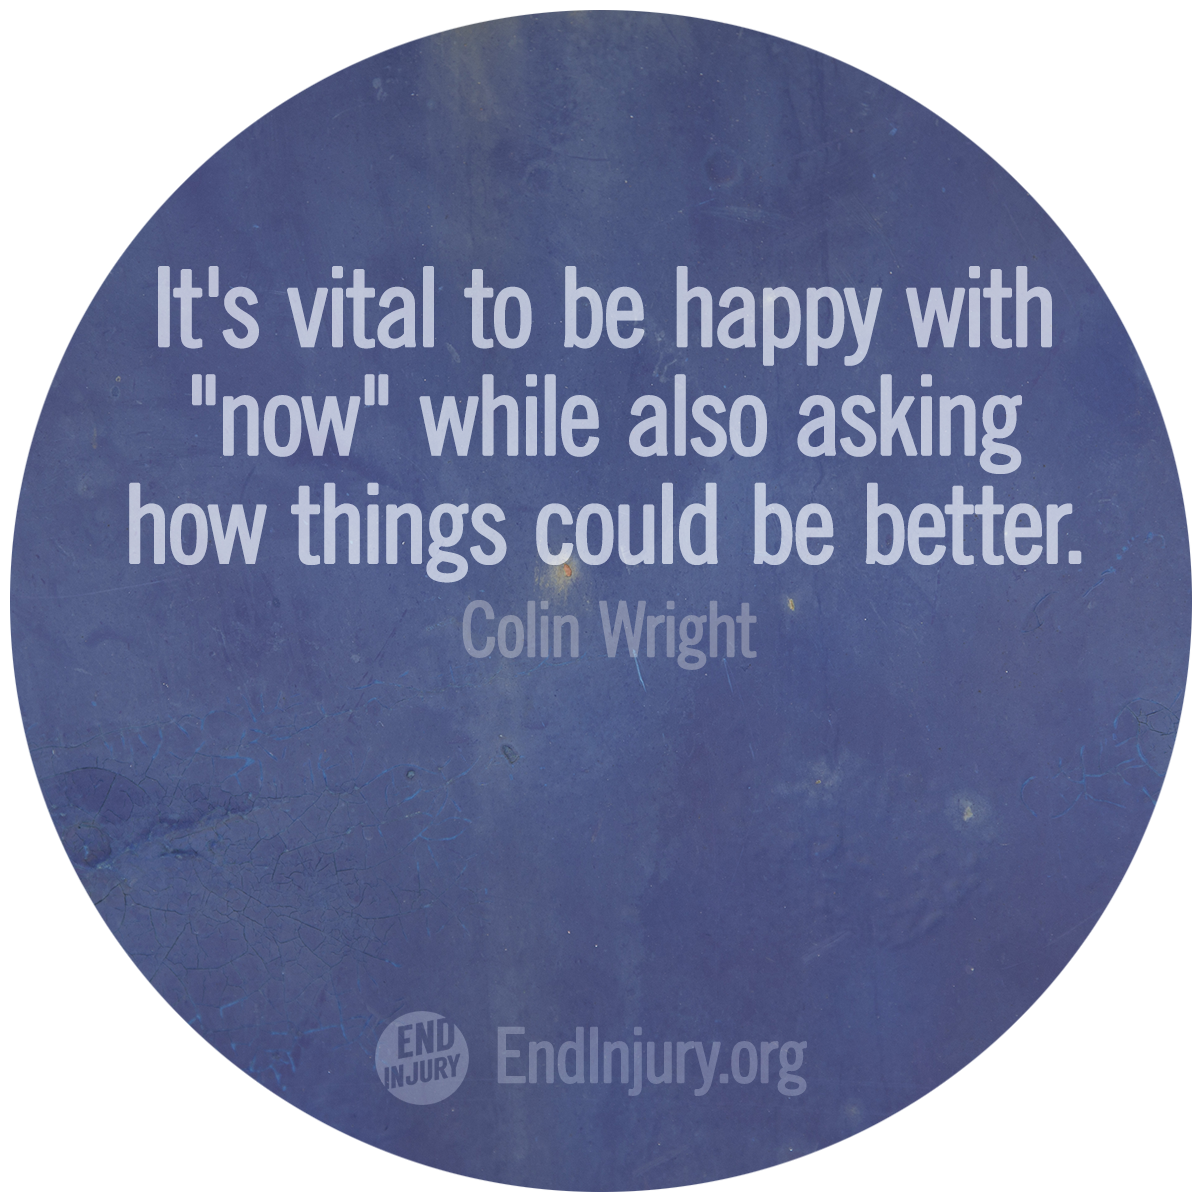 happy-now-wright-quote-photo.png